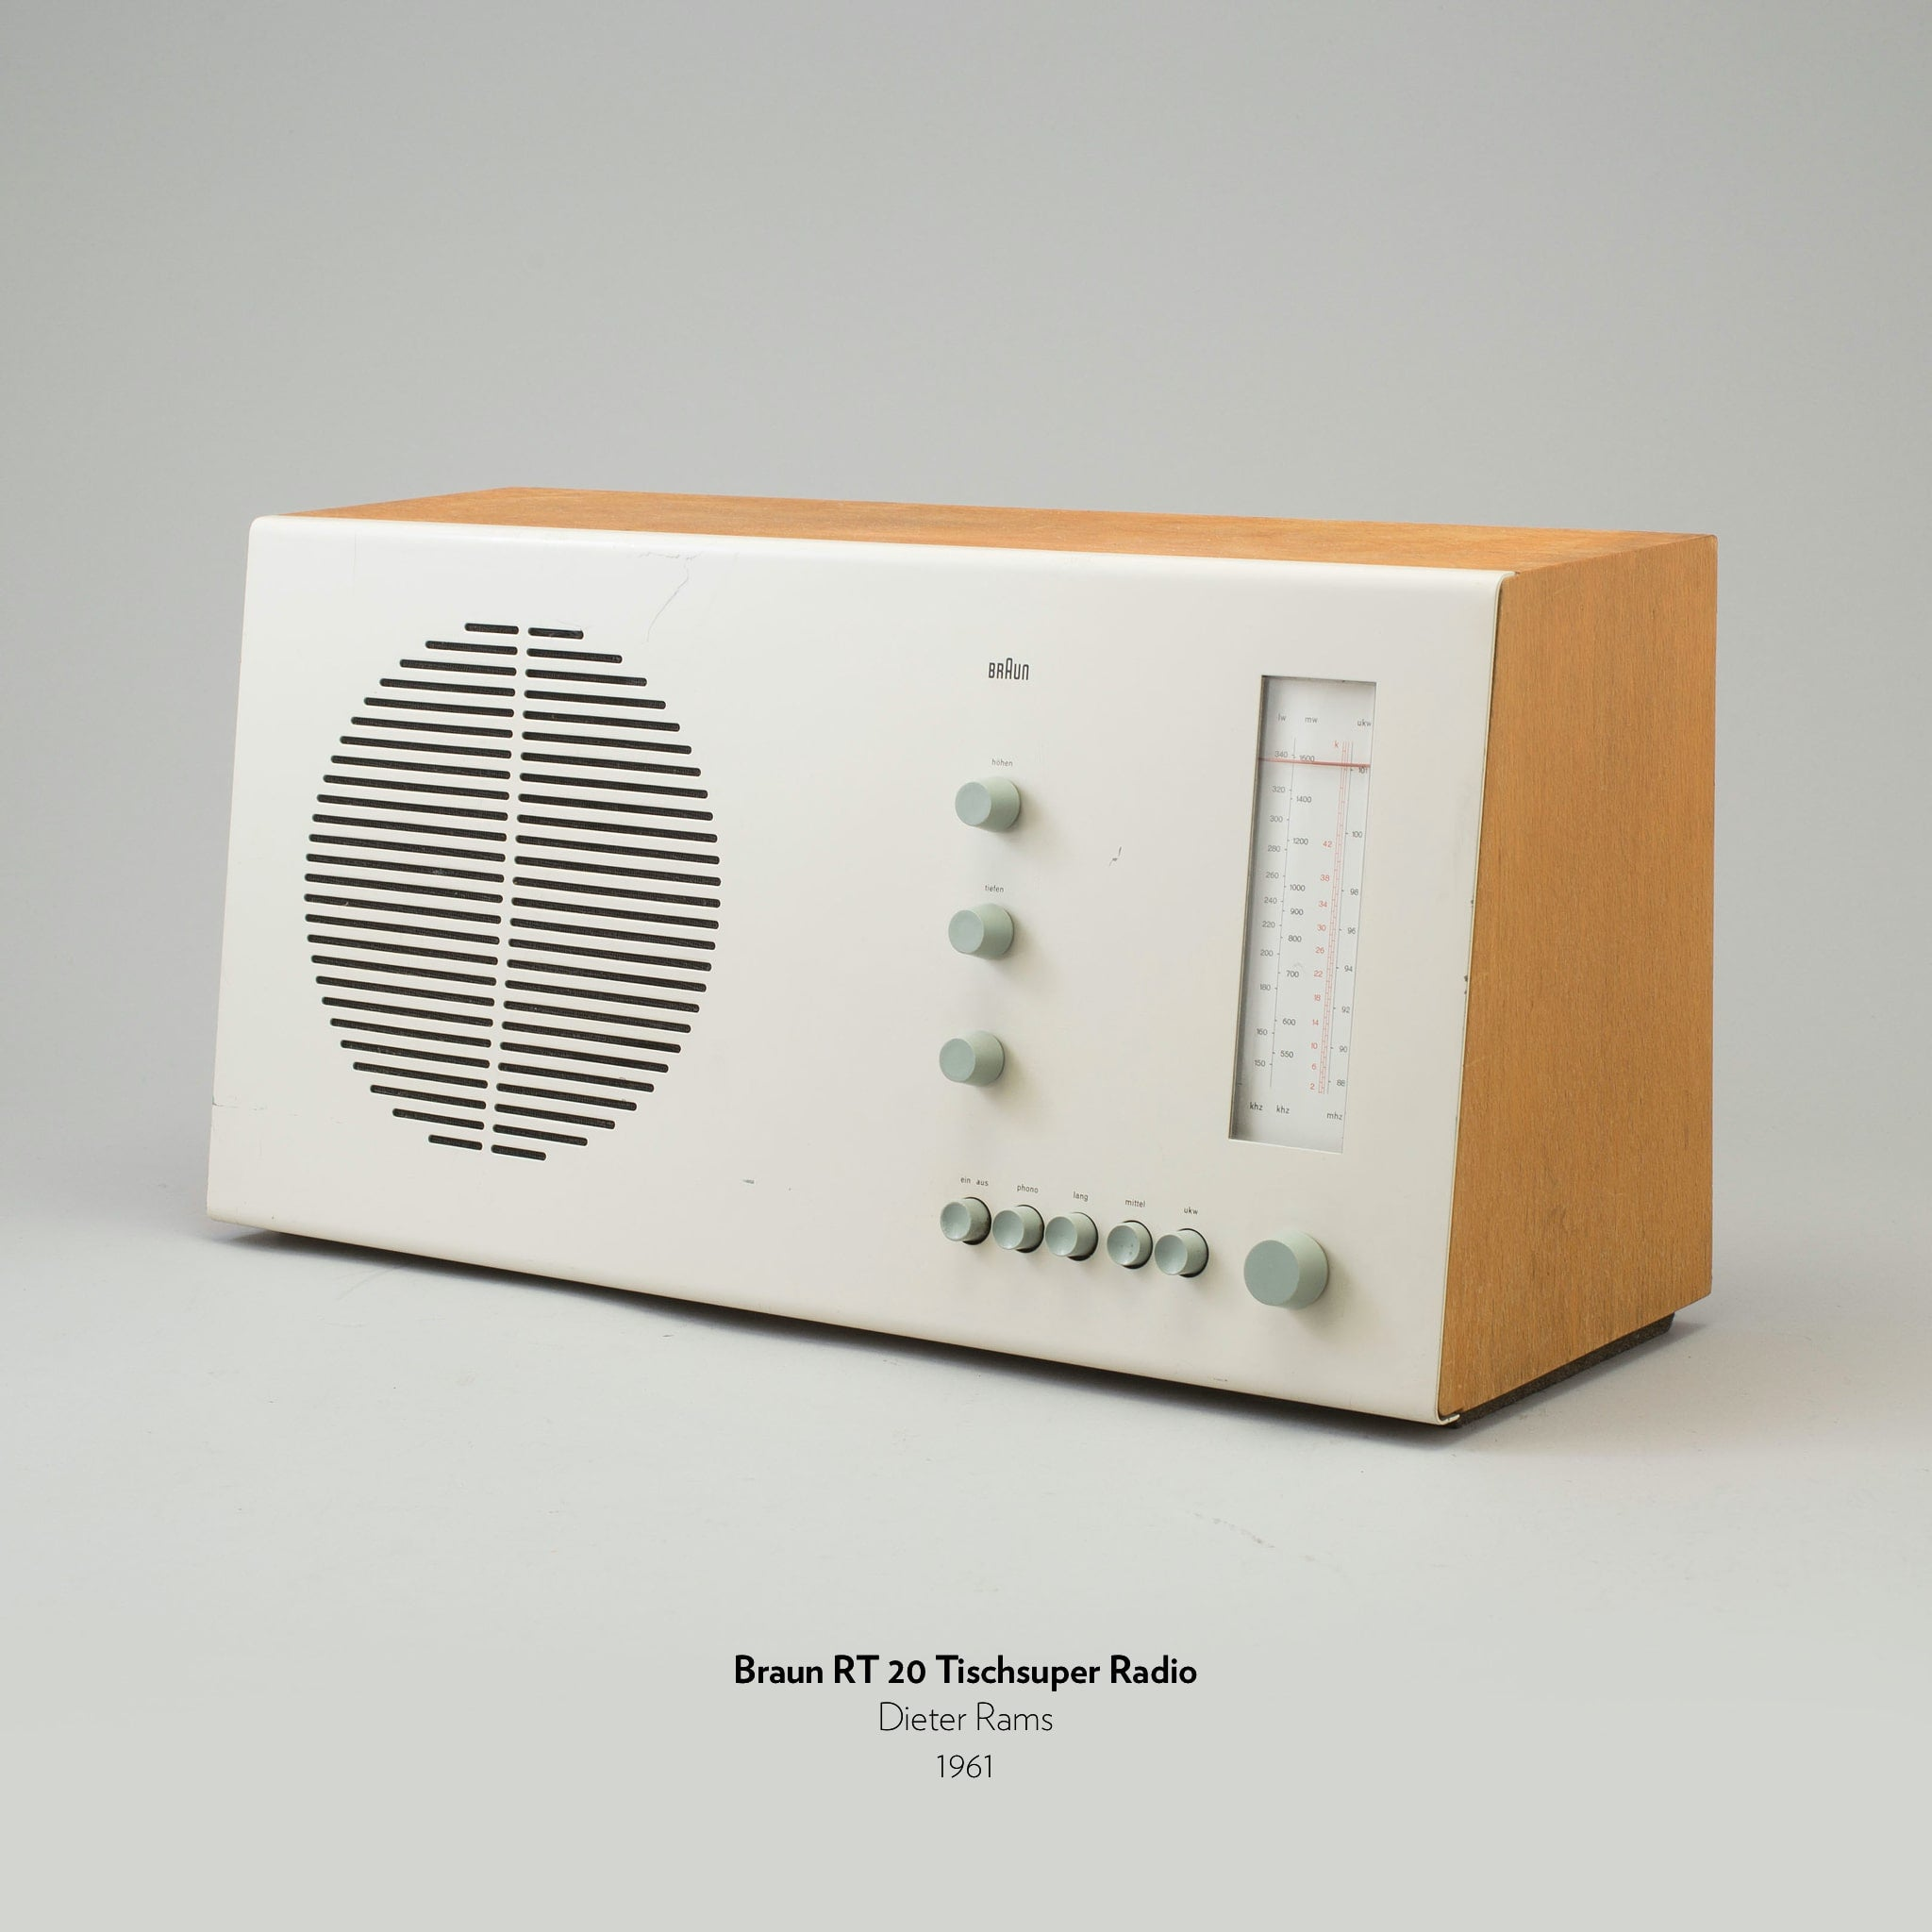 Braun RT 20 Tischsuper Radio designed by Dieter Rams in 1961.